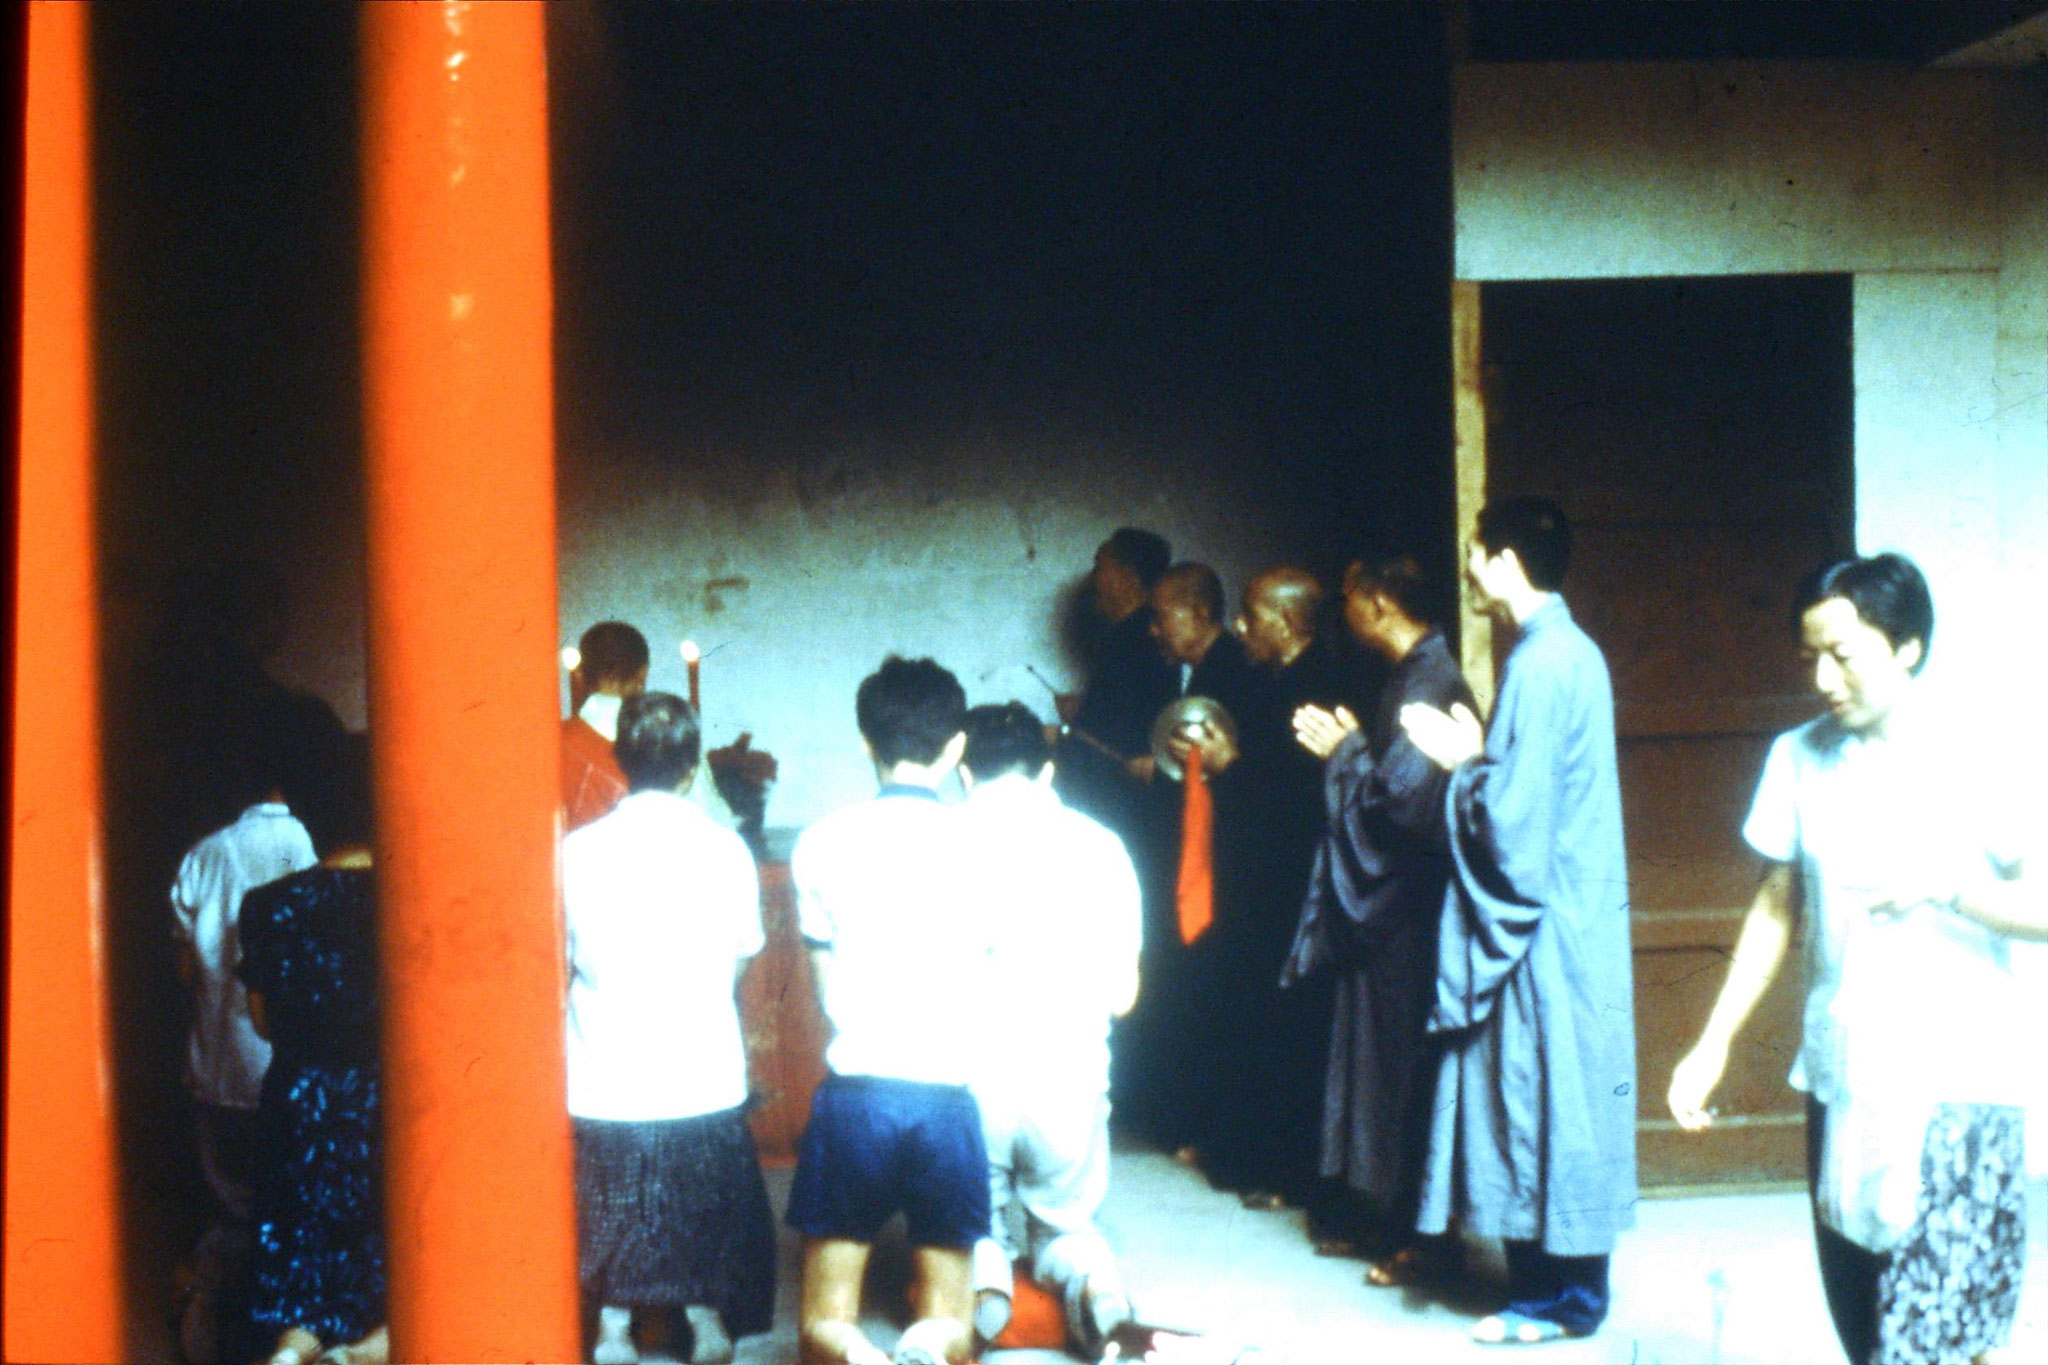 24/7/1989: 14: Putuo, monks saying private prayers for two women